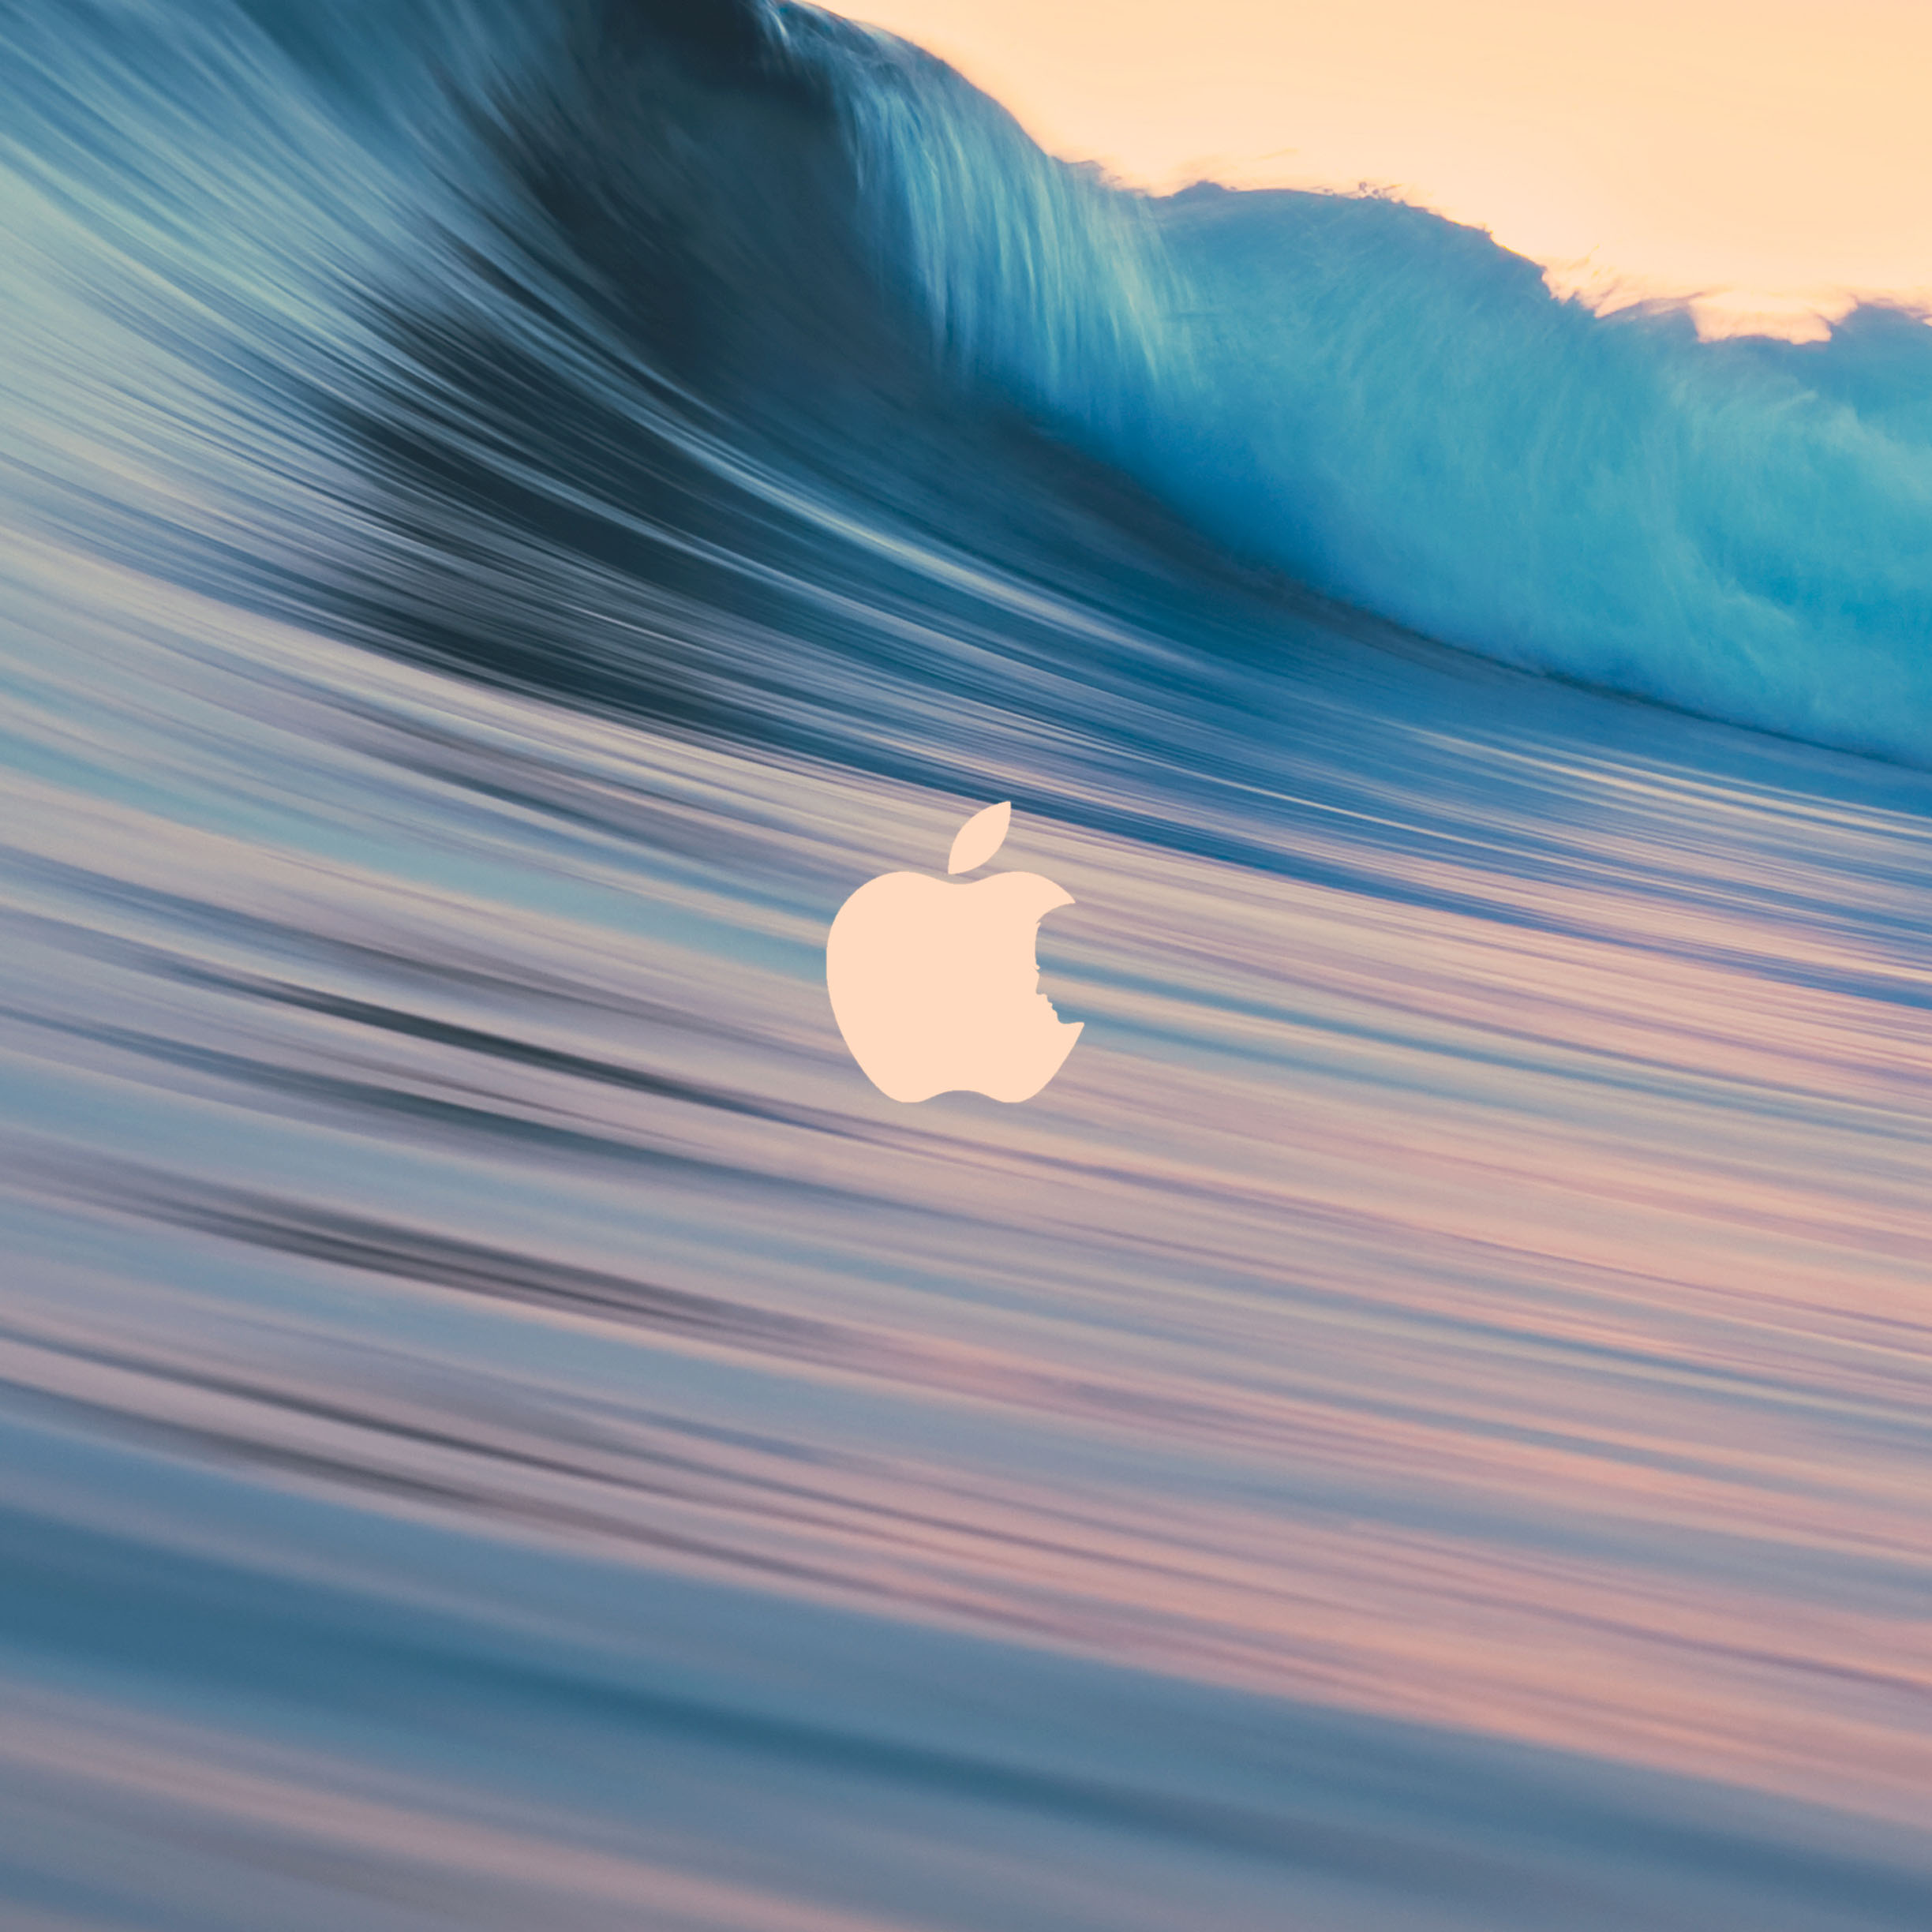 Wallpapers For Mac Hd: Wallpapers Of The Week: Apple Logos